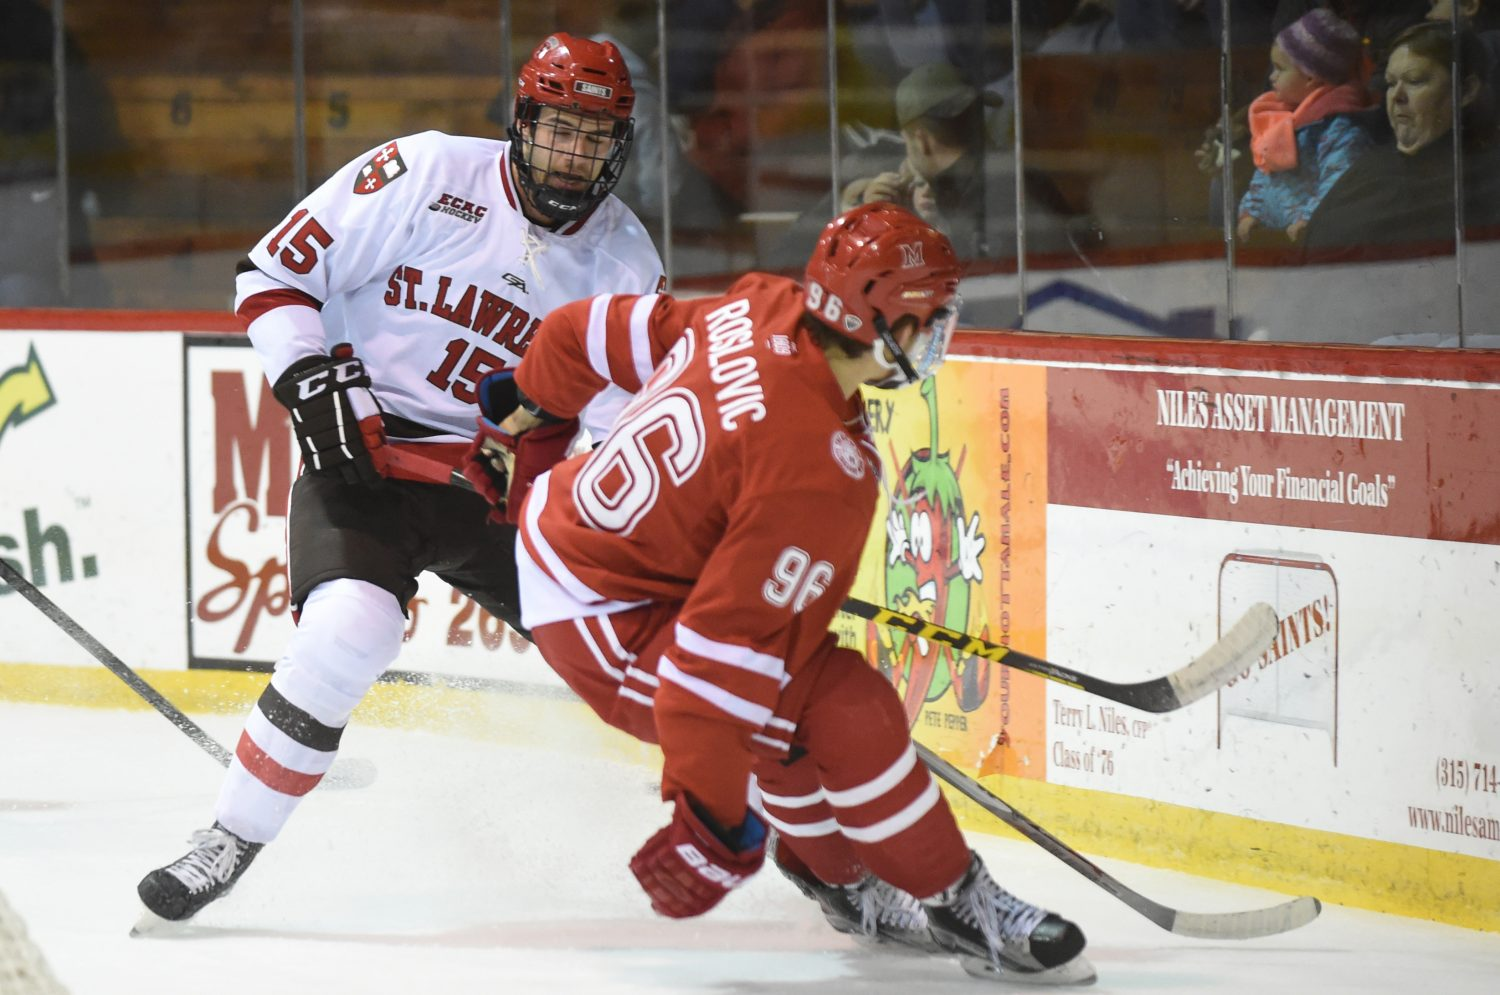 Matt Purmal shuts down a charge from an opposing forward in a recent St. Lawrence U. game. Tara Freeman photo